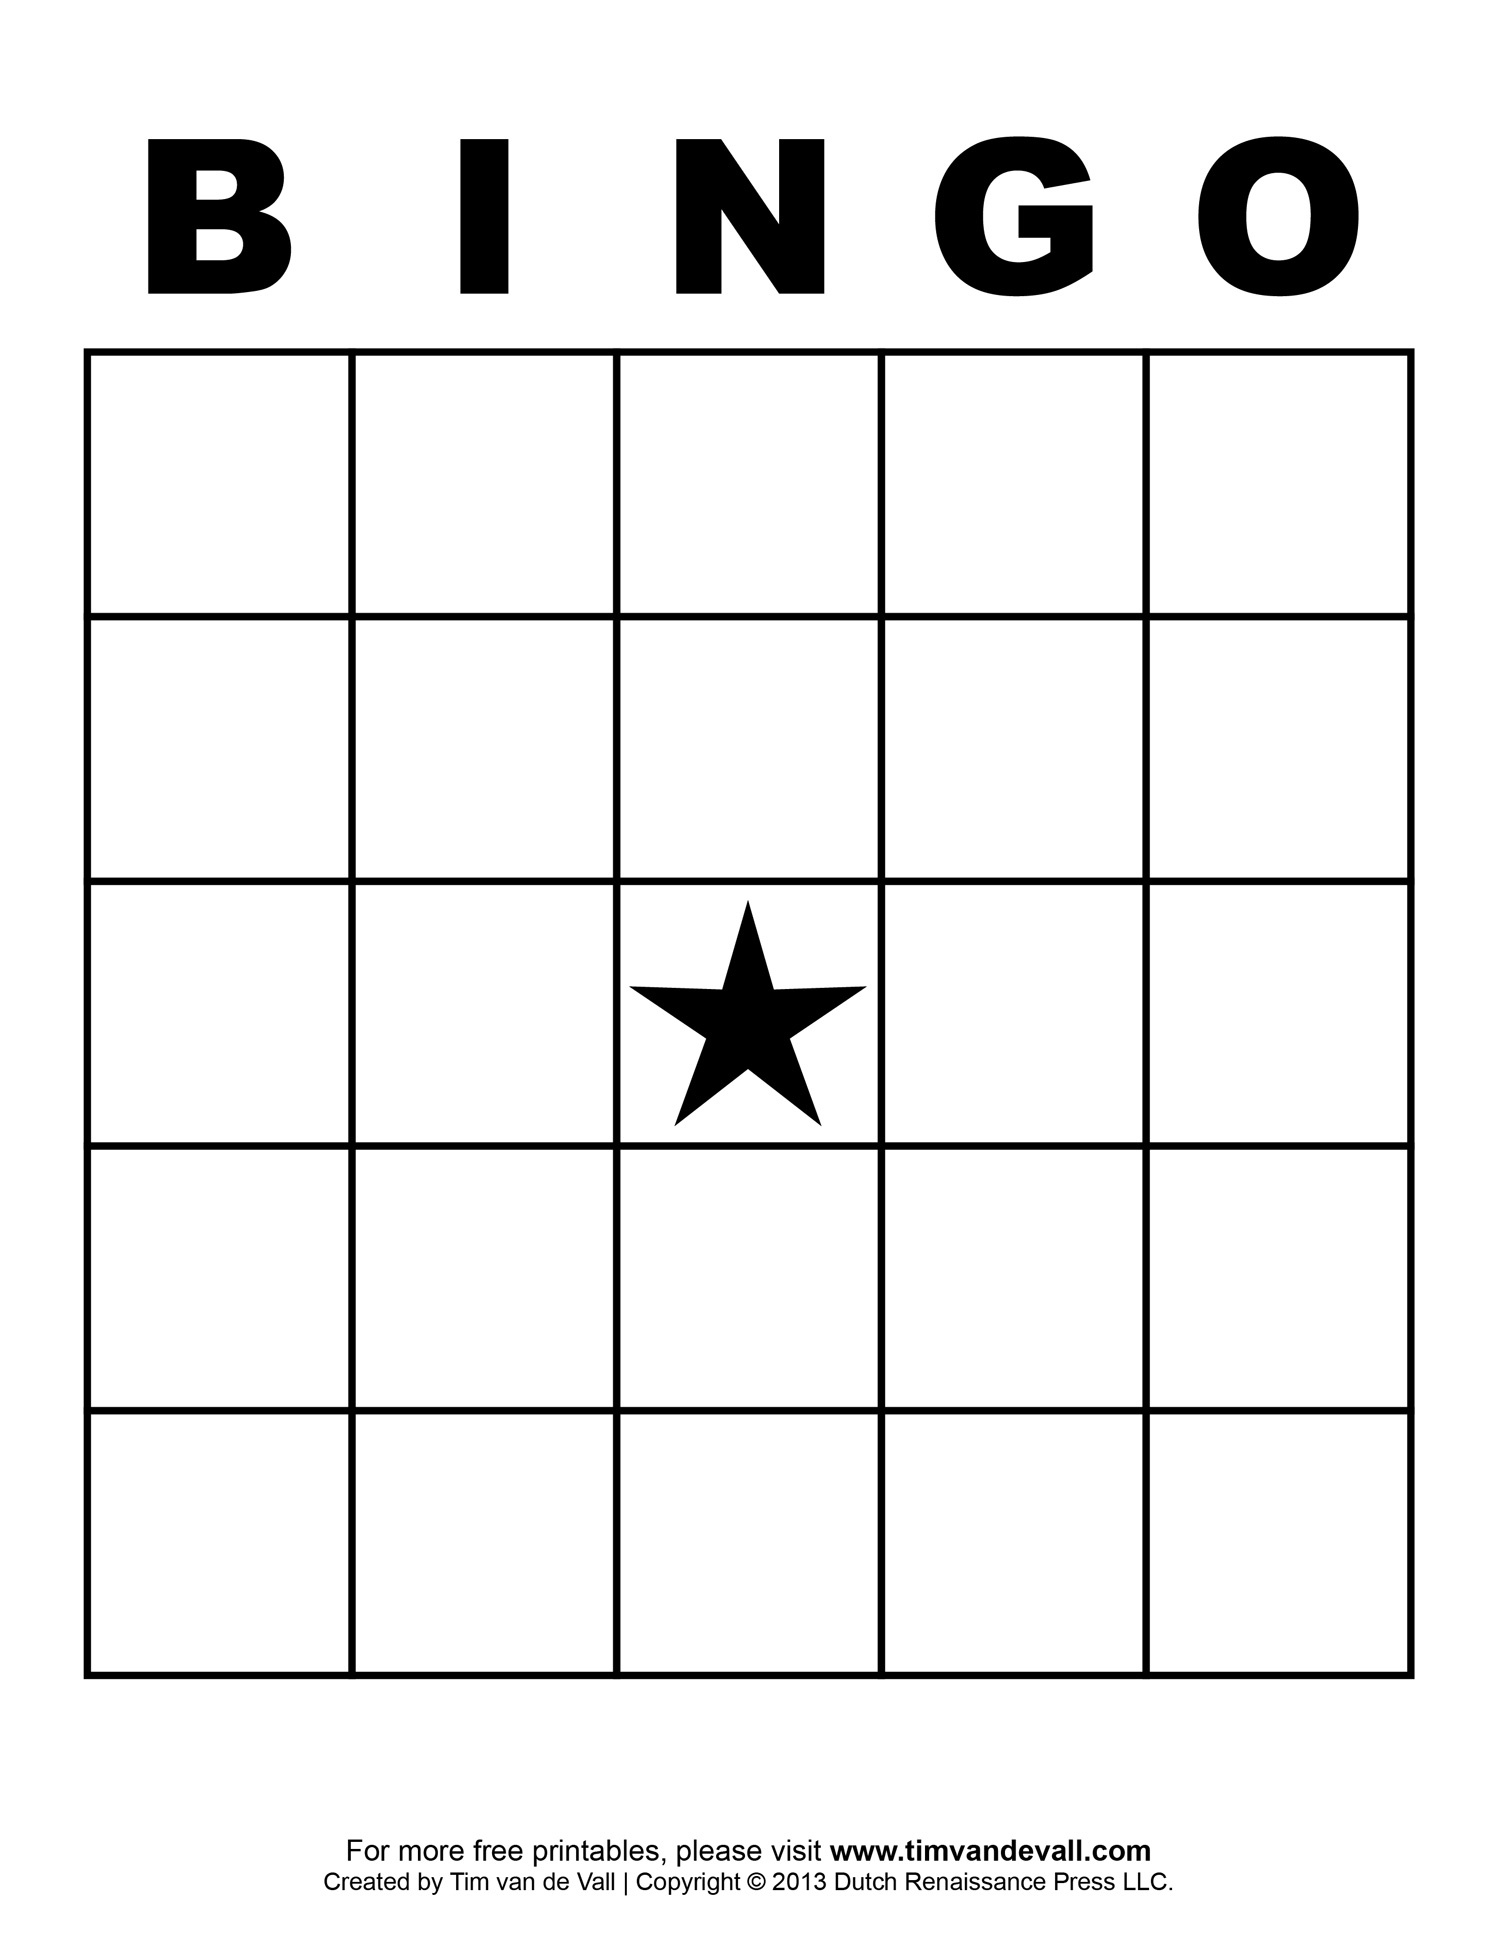 Blank Bingo Template - Tim's Printables - Free Printable Bingo Cards With Numbers